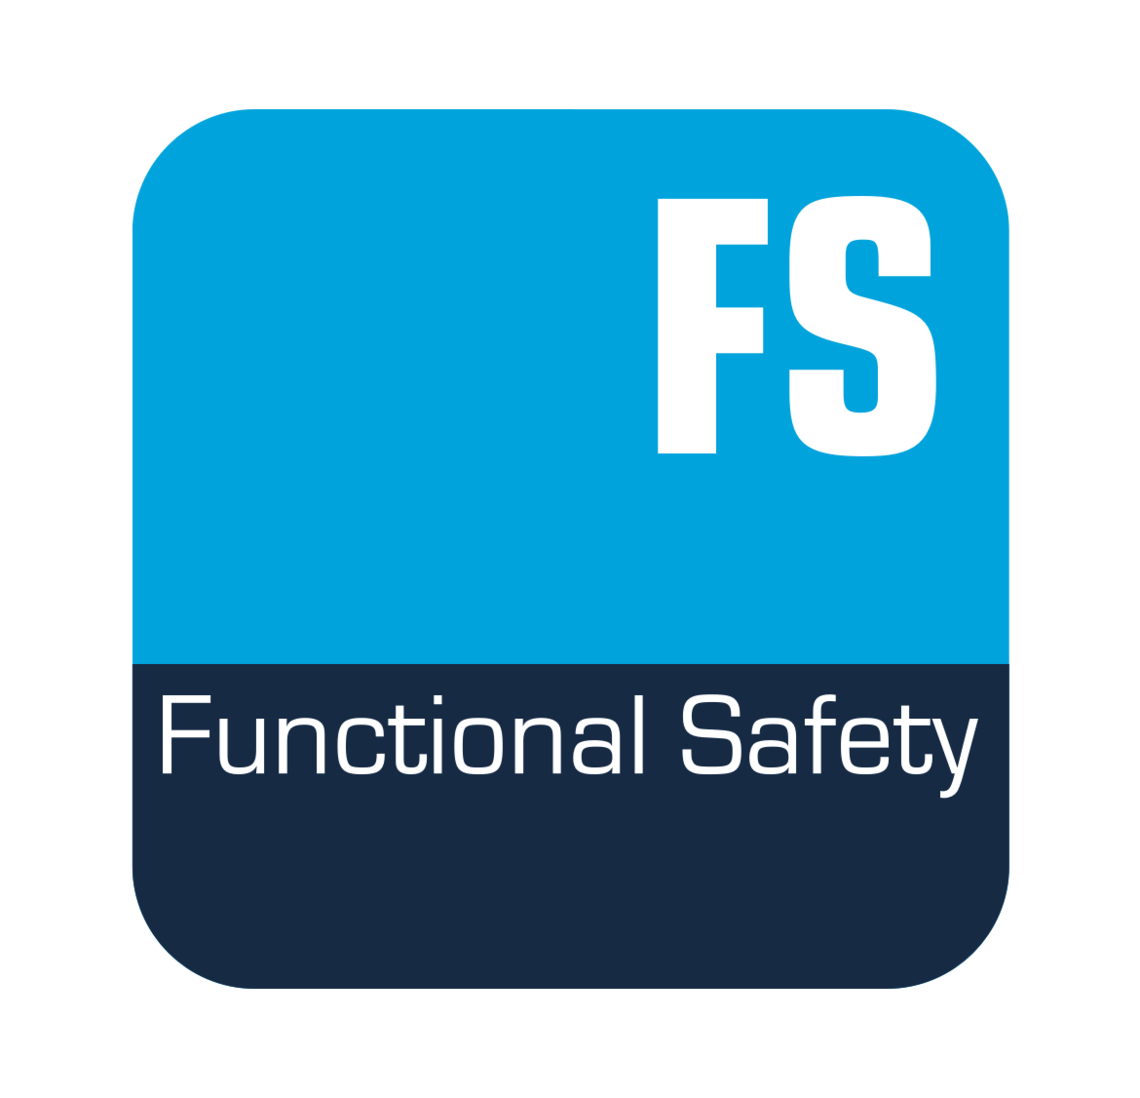 AEF Functional Safety